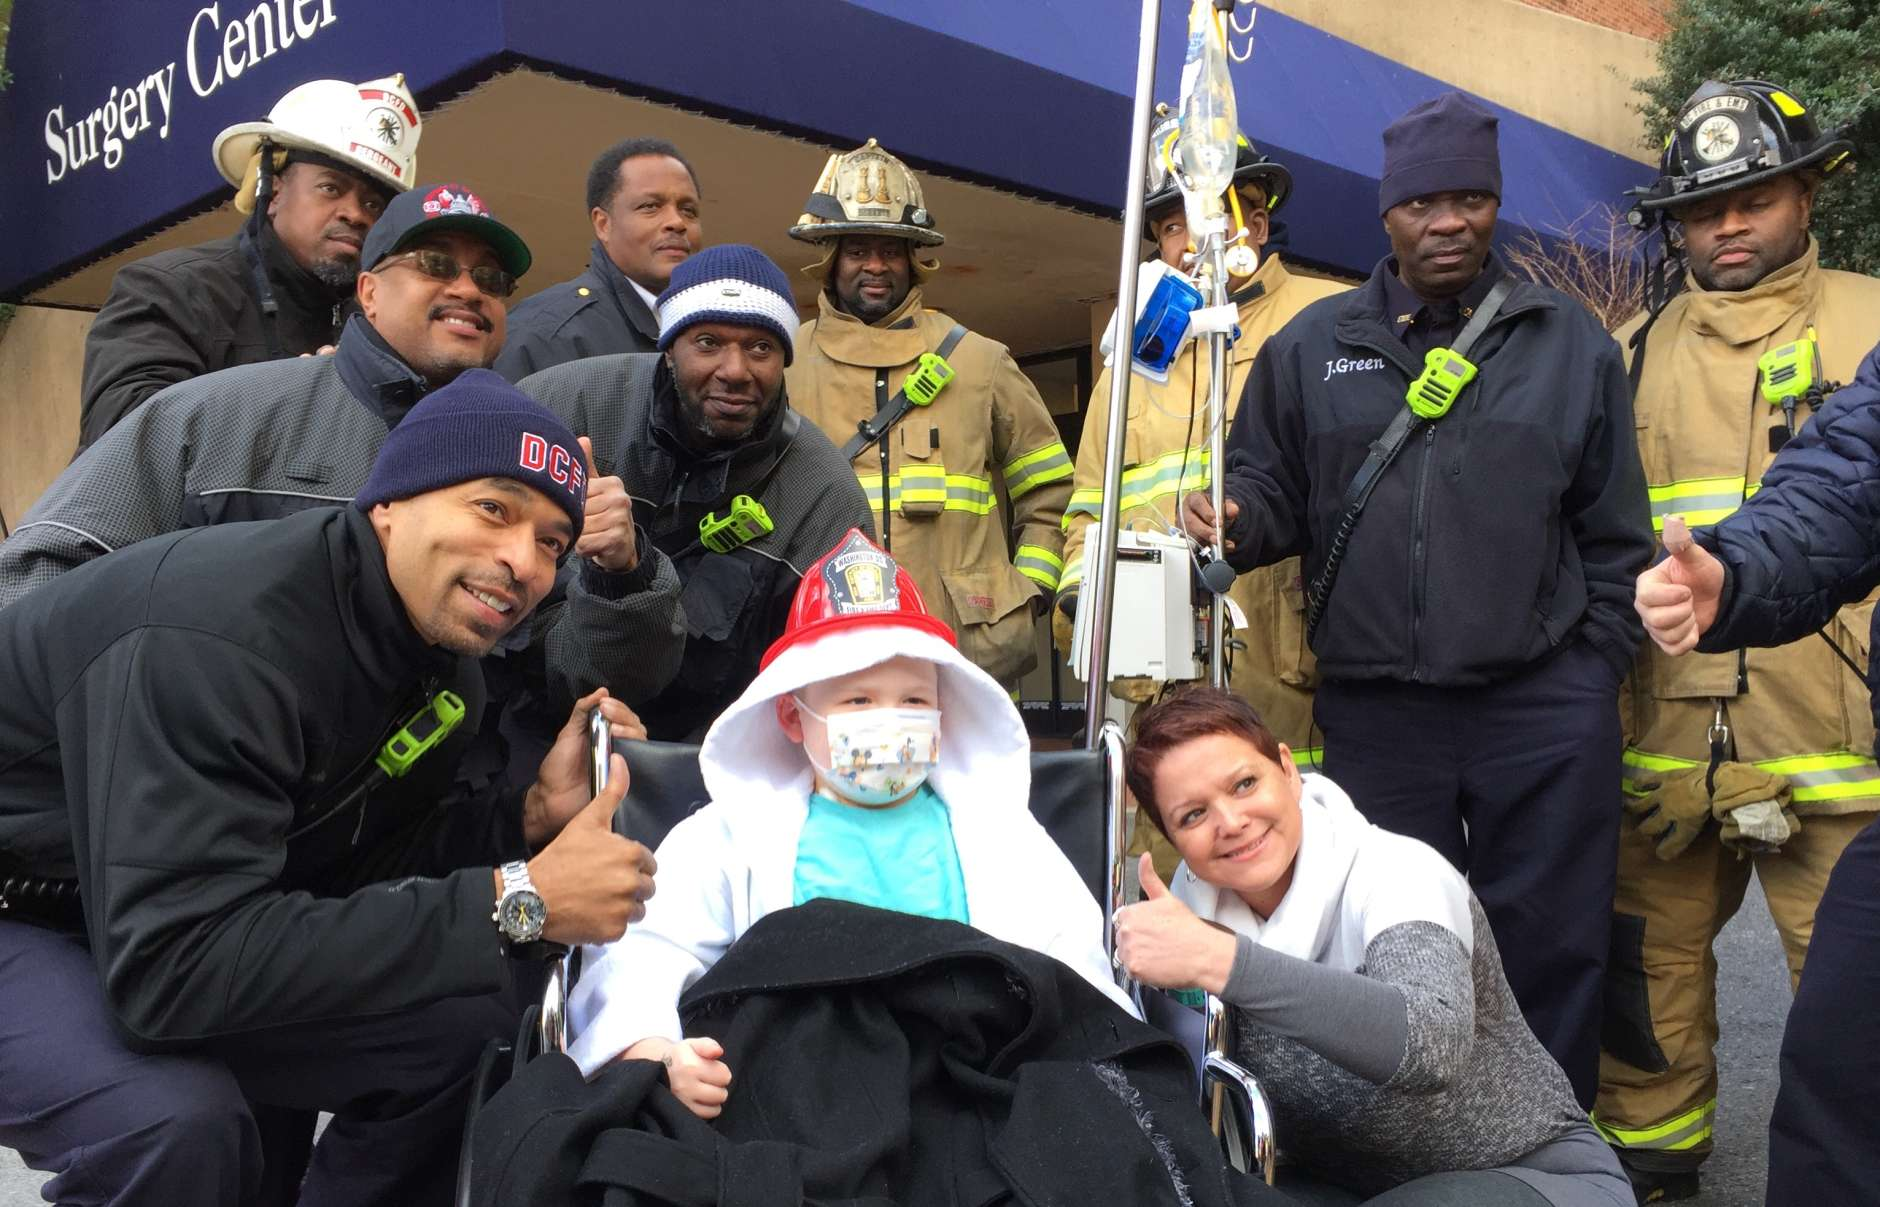 Hunter's mother, Kym Scarborough, draped her child's lap with her coat when they came outside and discovered how cold it was for the firefighter visit. (WTOP/Kristi King)